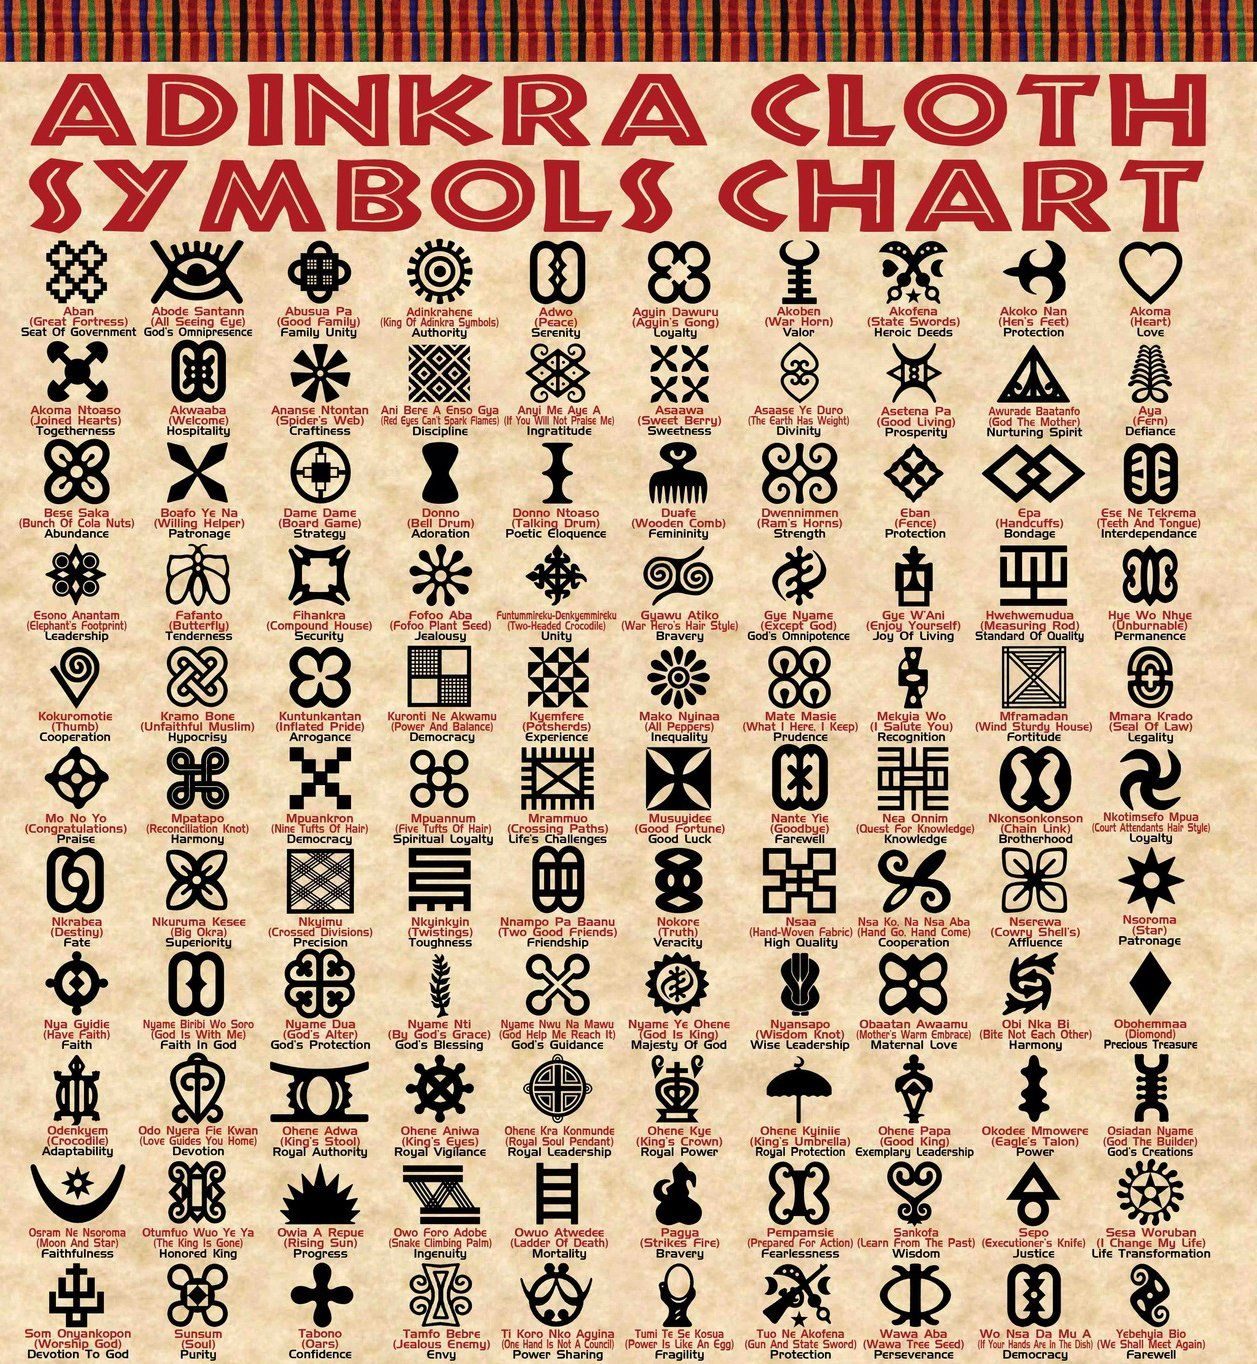 Adinkra Symbols And Their Meanings Google Search African Art